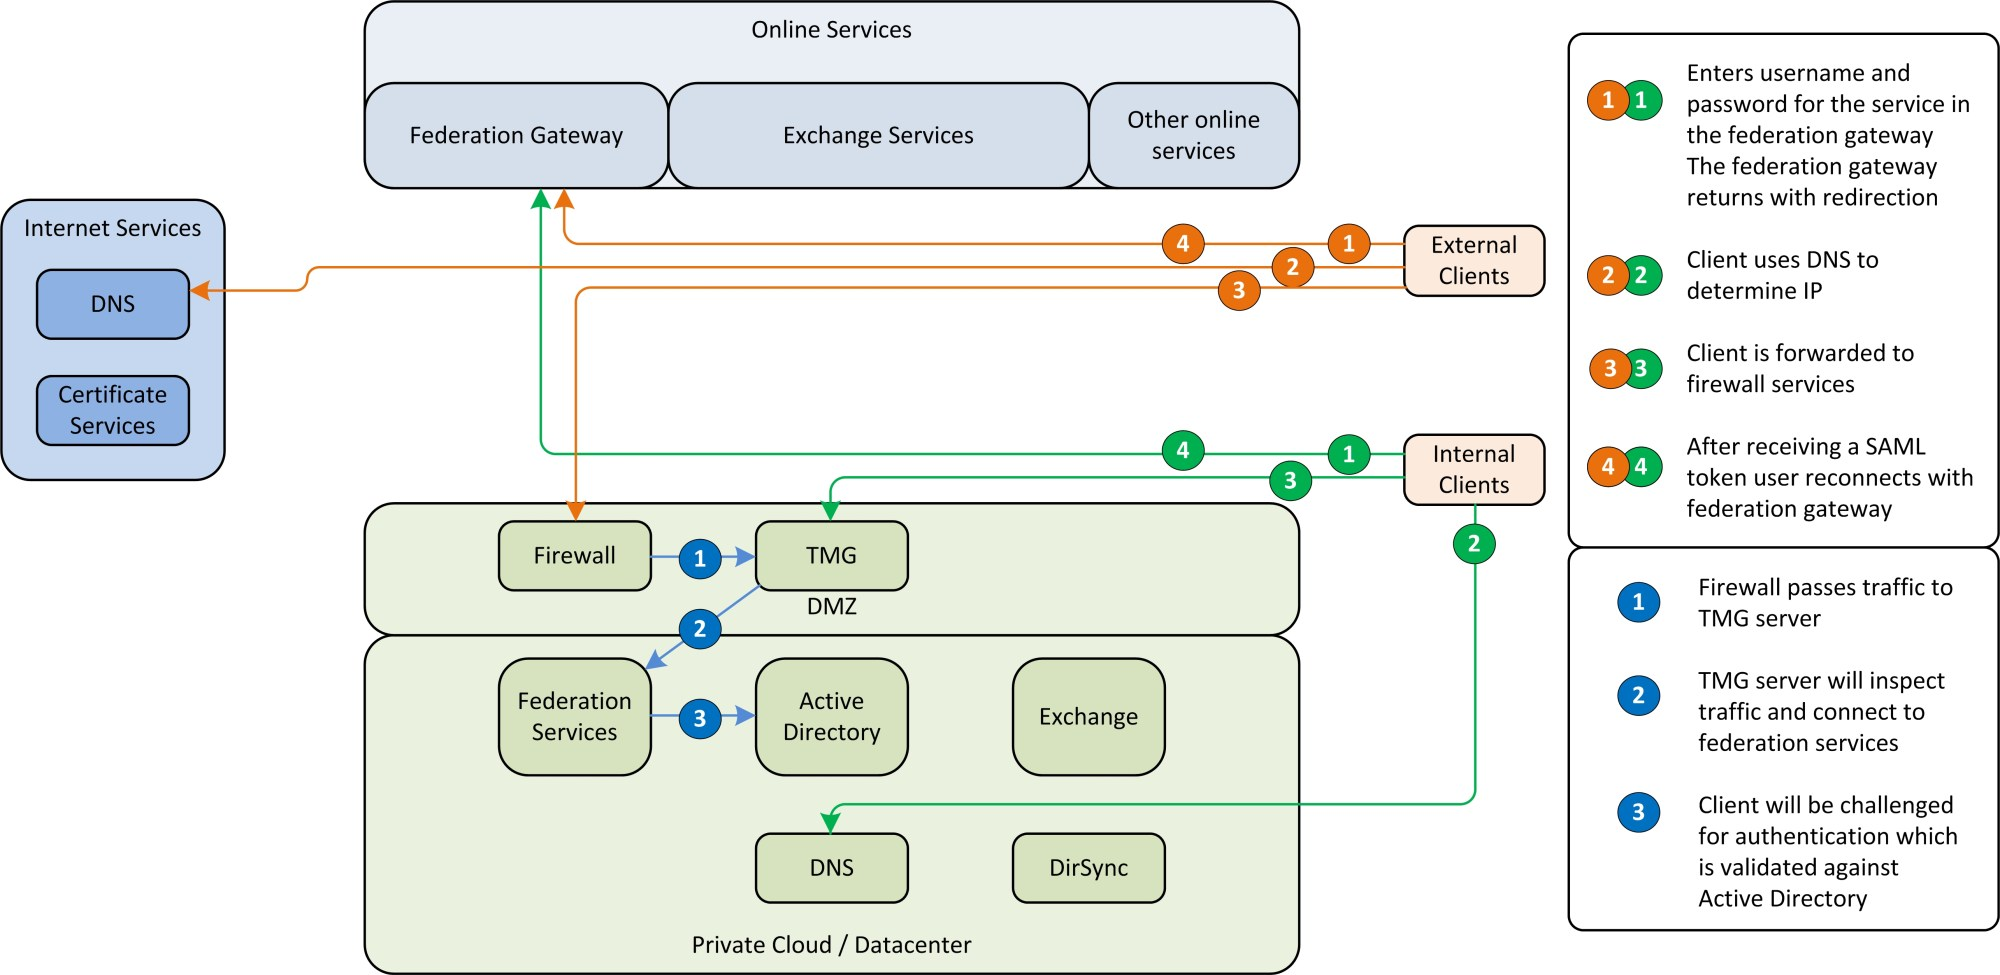 hight resolution of passive clients and active clients use a different method for authentication passive clients are redirected from federation server to federation server in